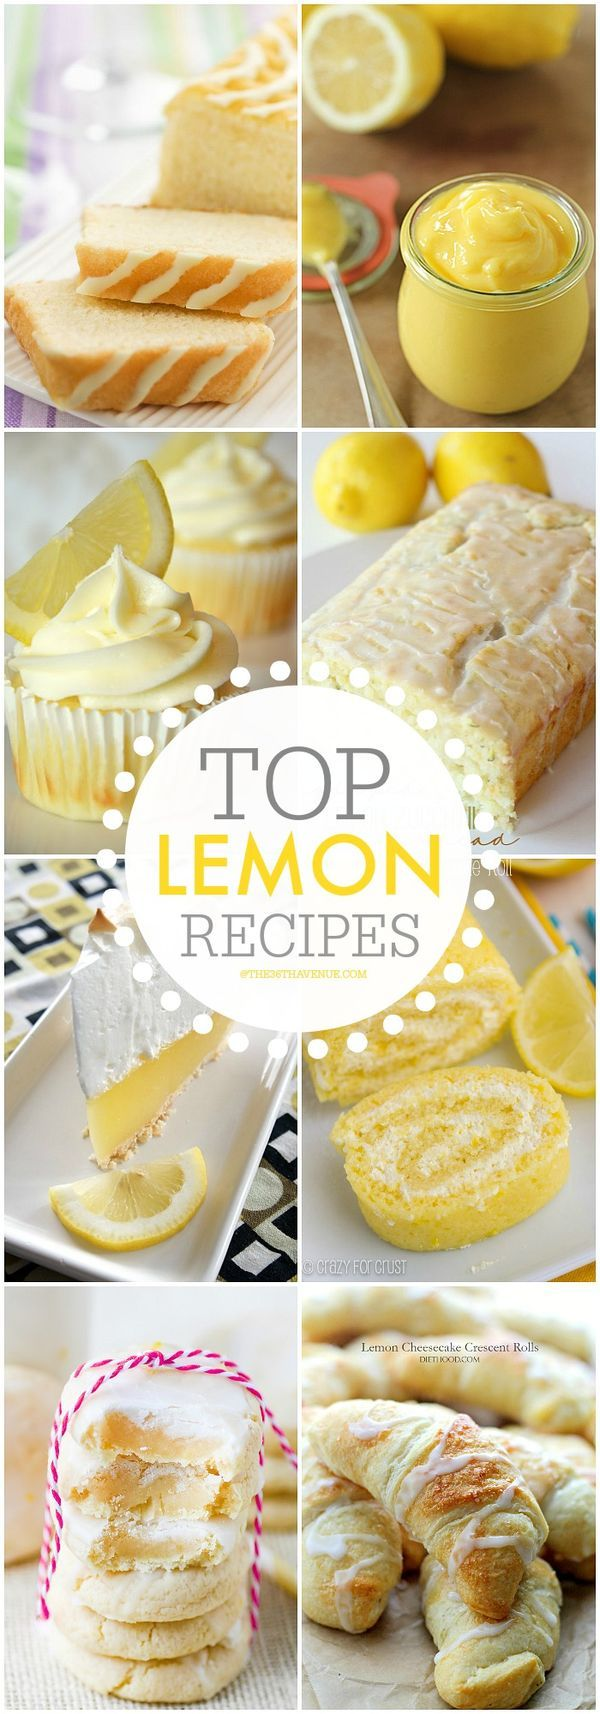 Best Lemon Recipes! Easy Dessert and Breakfast Recipes!